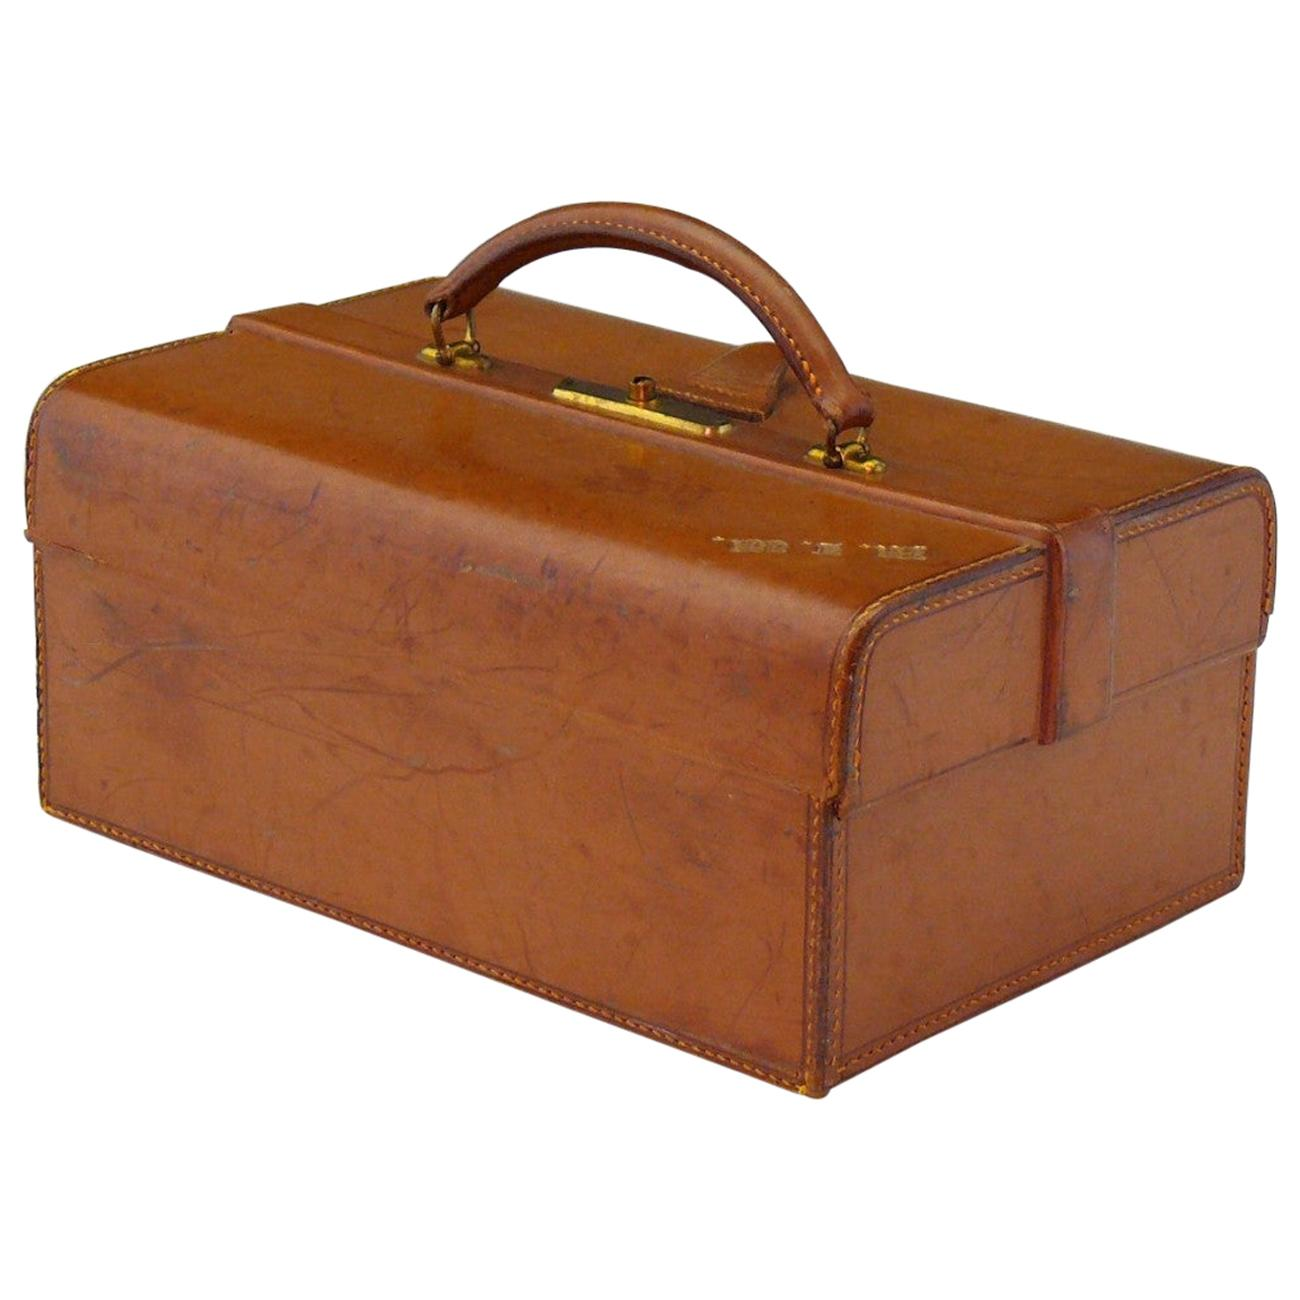 Leather Jewelry Case by John Pound and Company, circa 1920